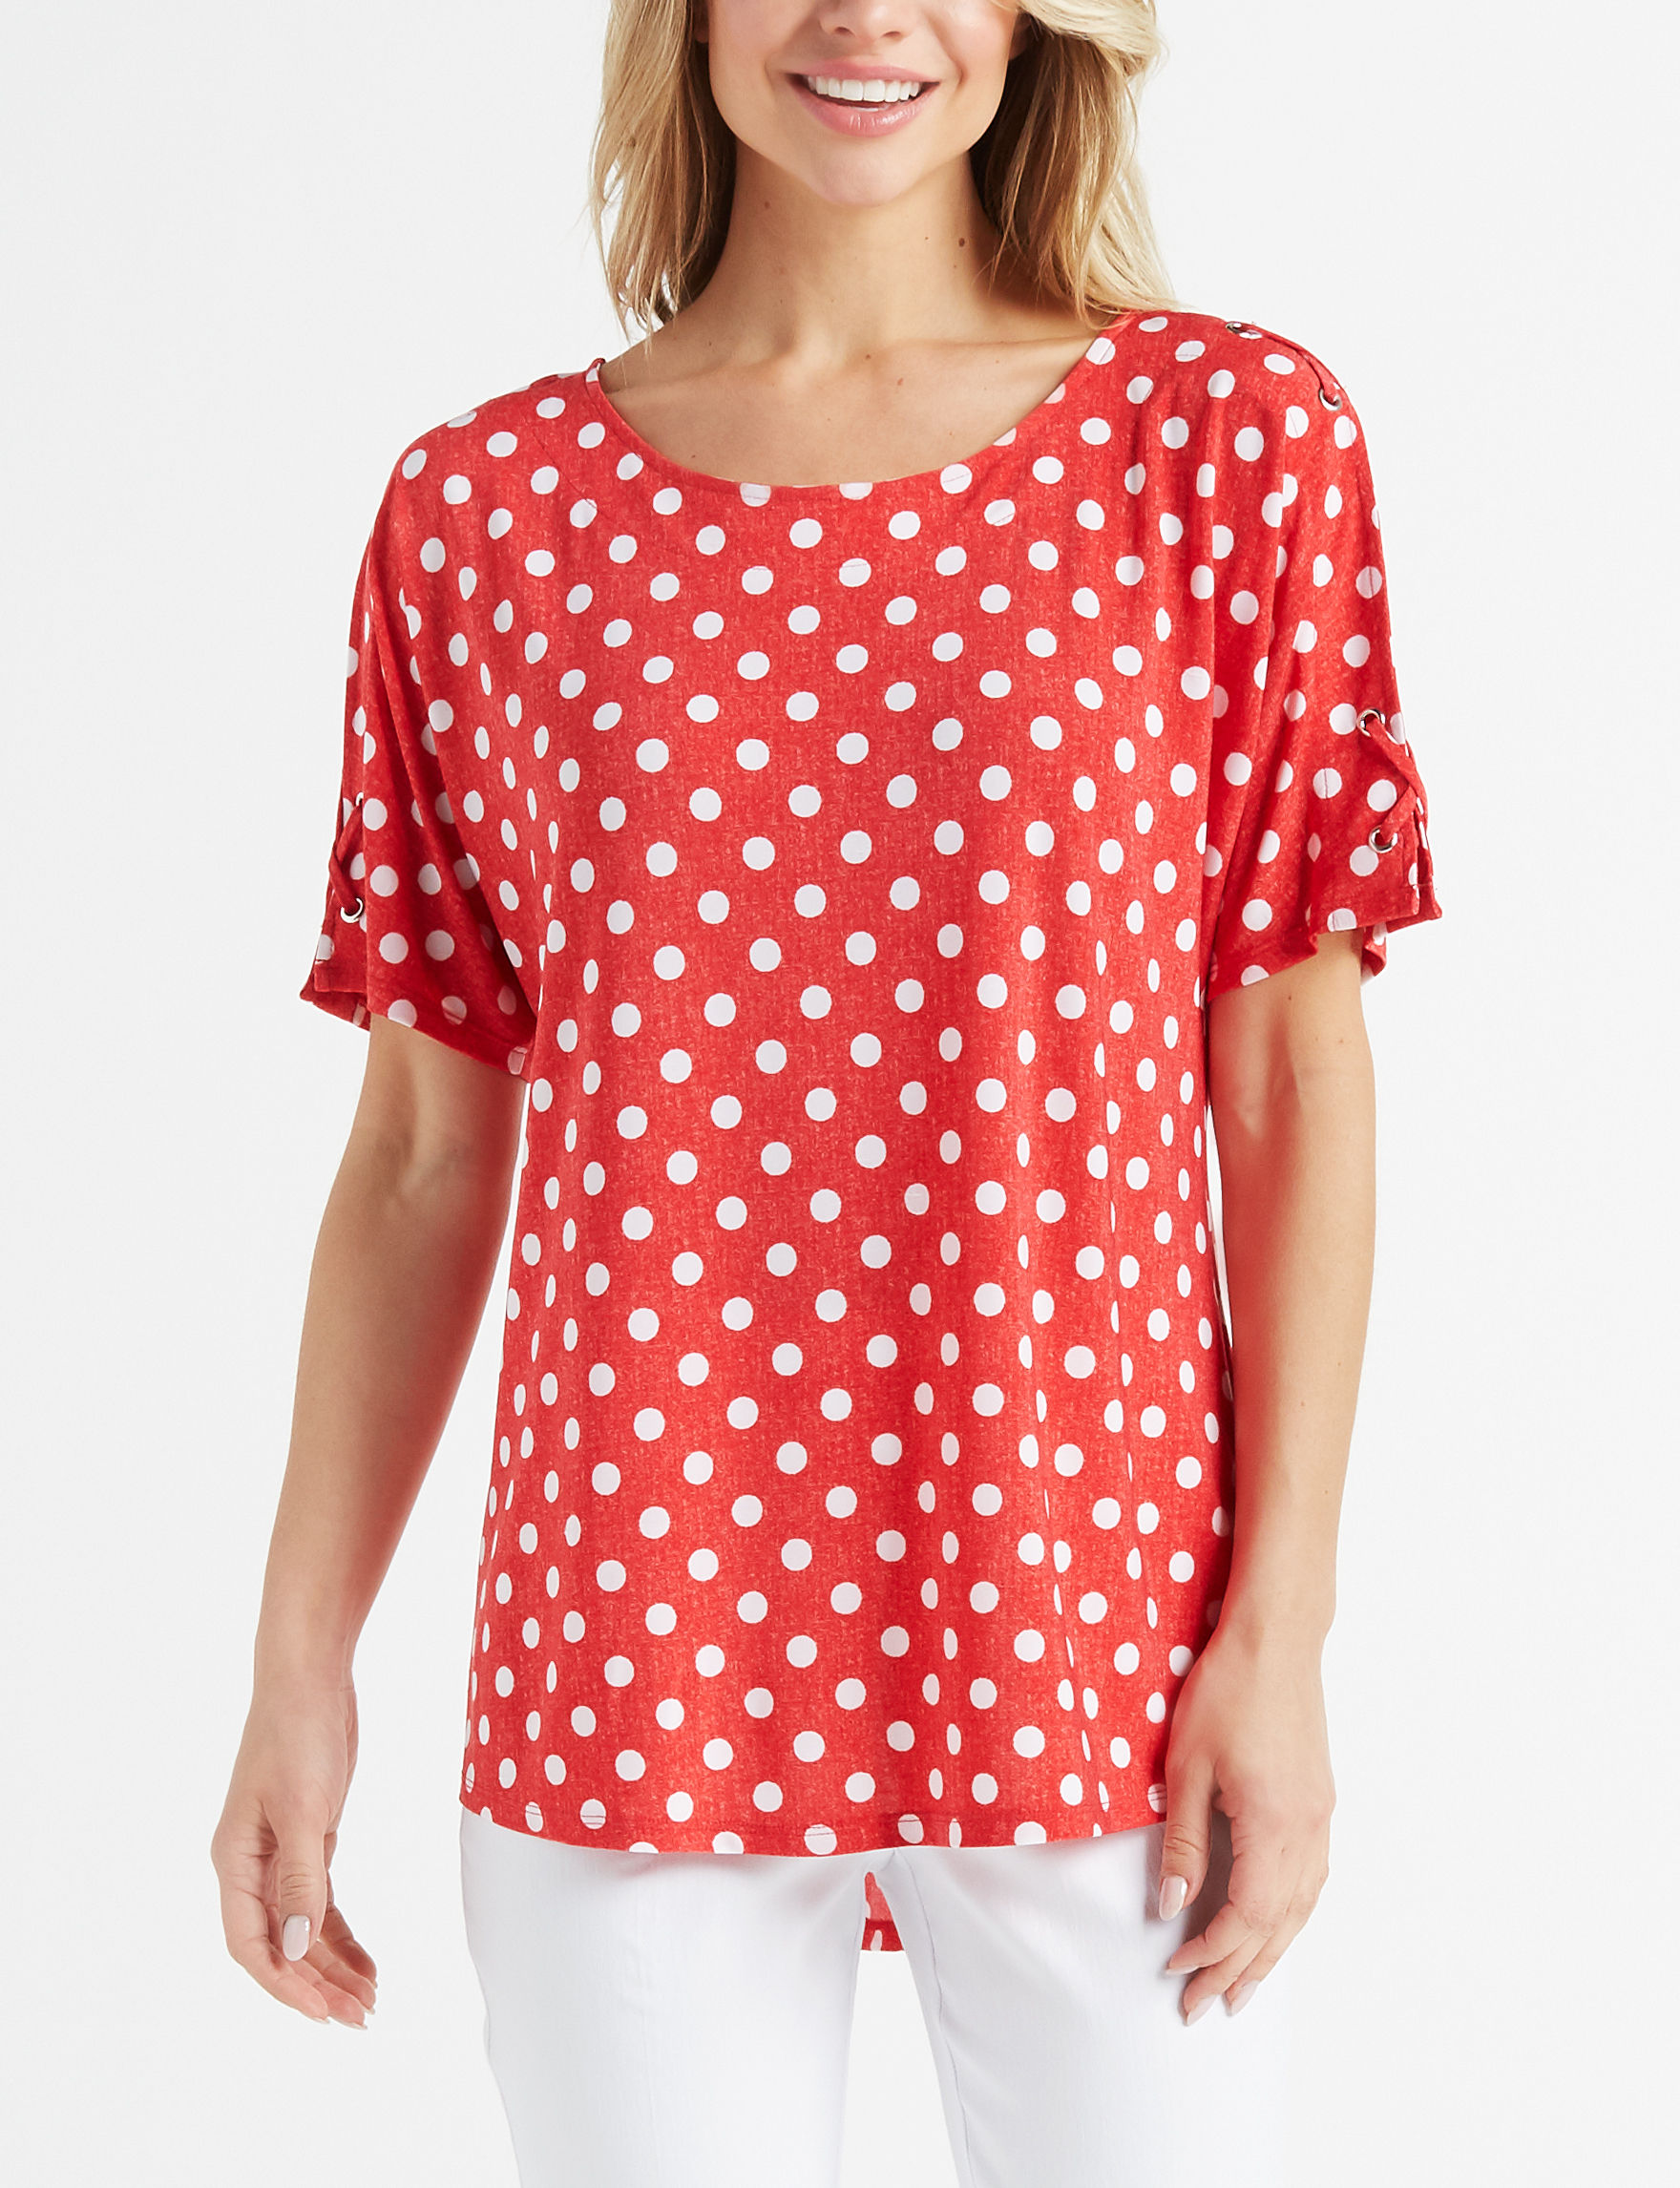 Cocomo Red / White Shirts & Blouses